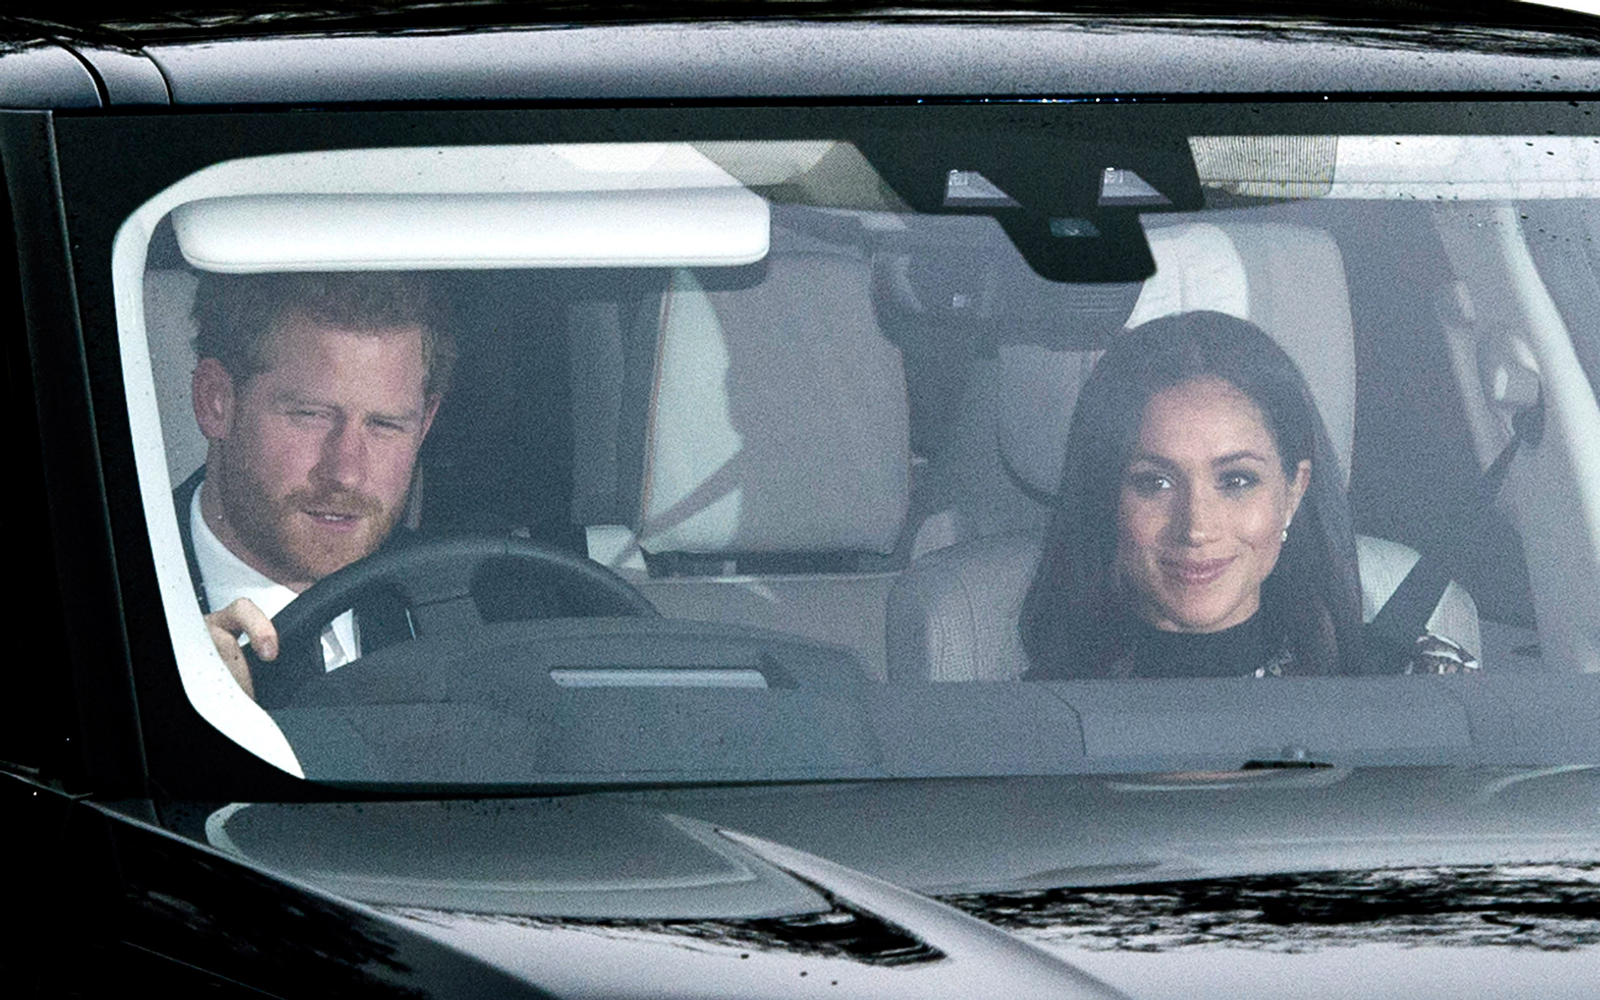 Prince Harry and Meghan Markle in a car